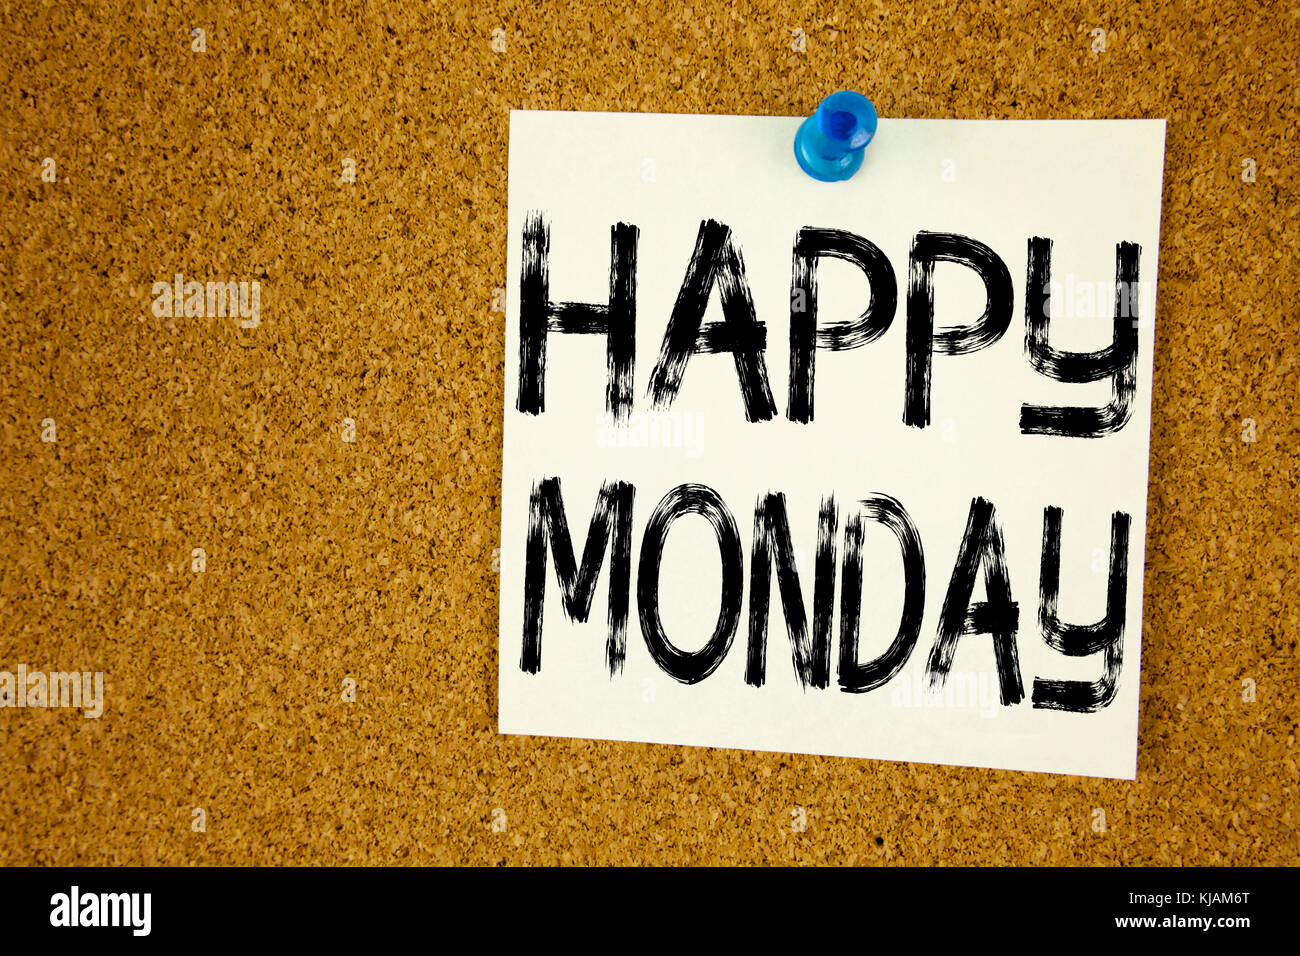 Conceptual hand writing text caption inspiration showing Happy Monday . Business concept for Greeting Announcement - Stock Image